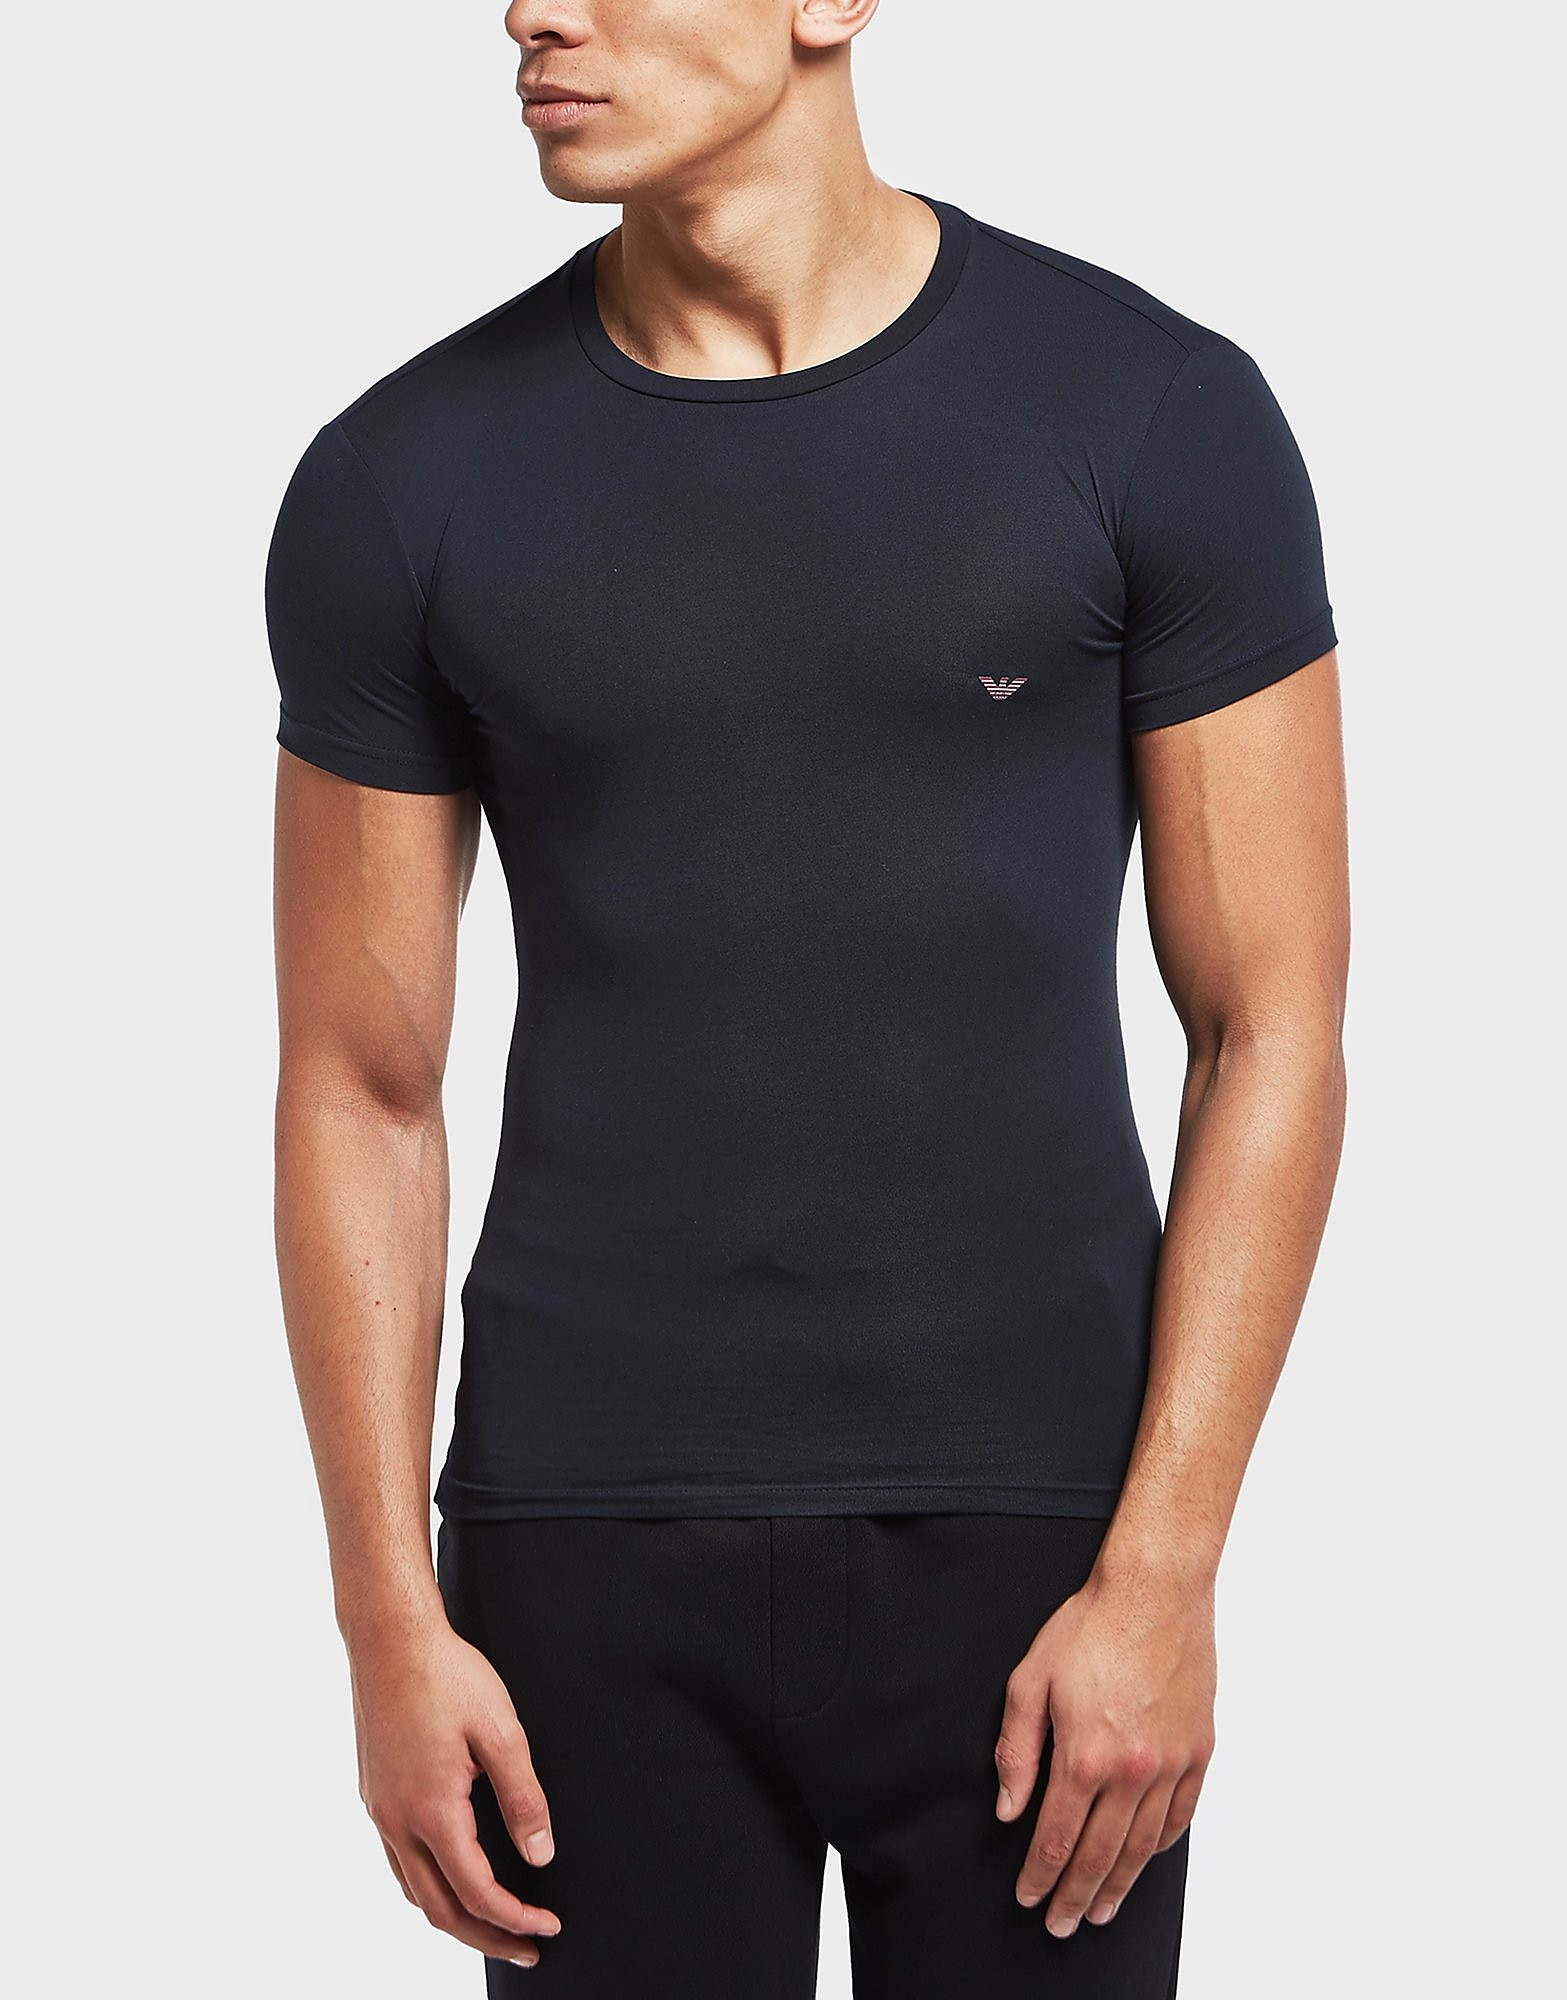 Emporio Armani Small Eagle Short Sleeve T-Shirt